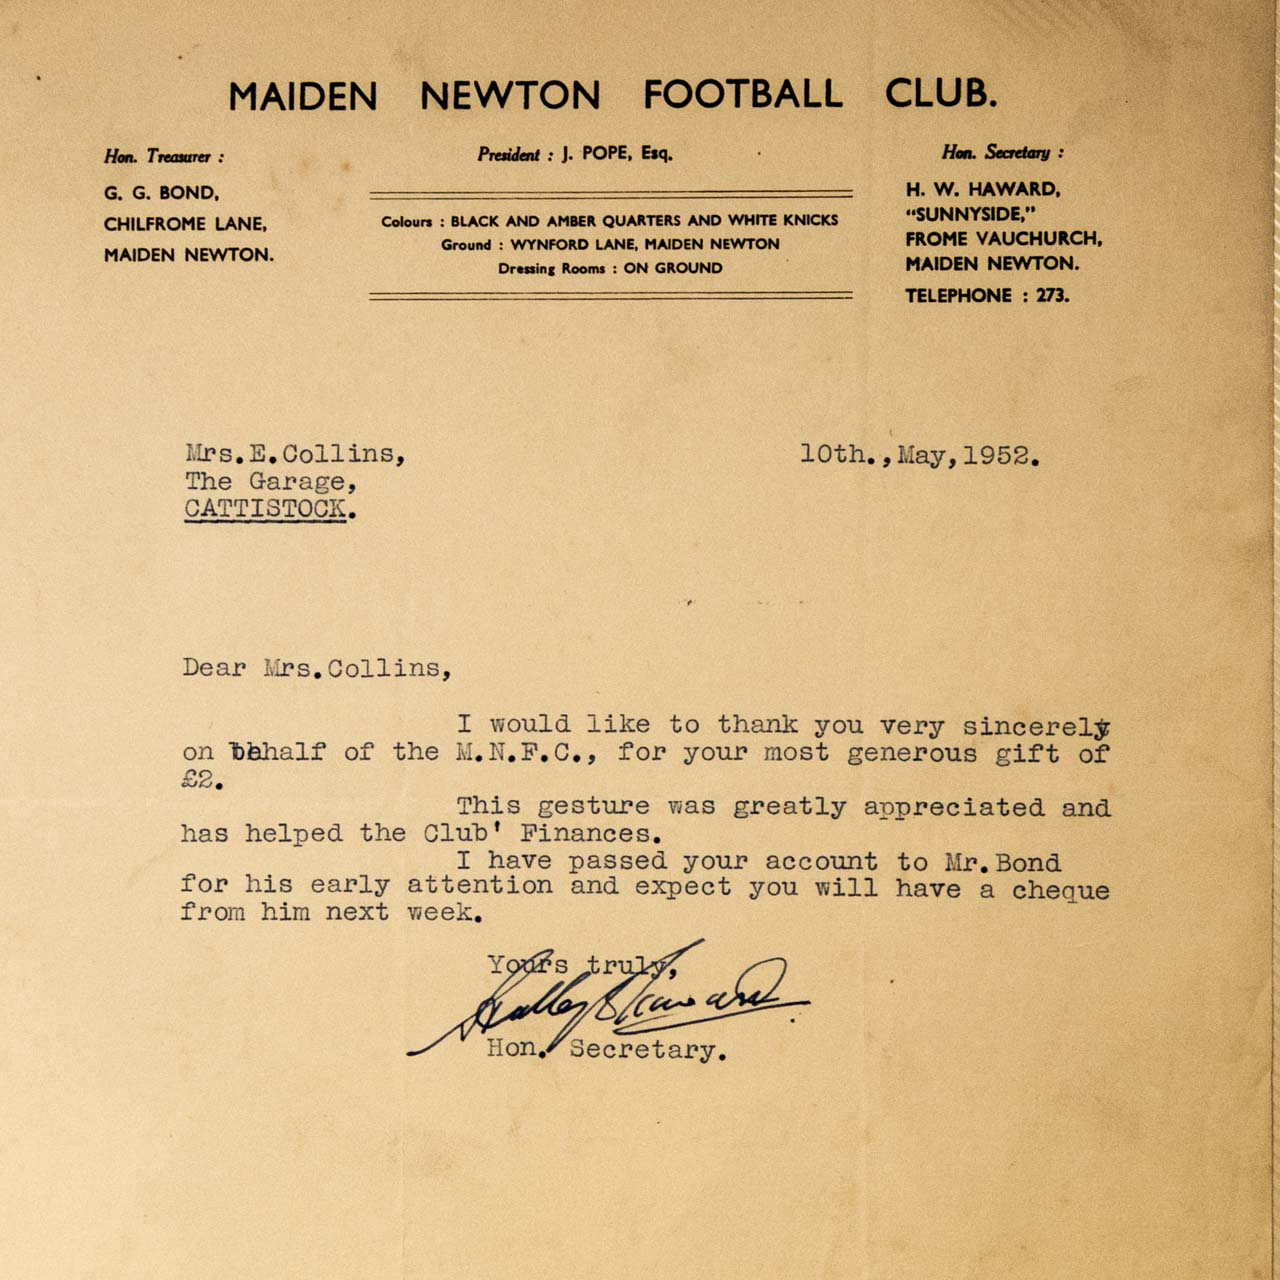 Appreciation for a generous donation of £2 (£64 in current value) to the Maiden Newton Football Club (1952)